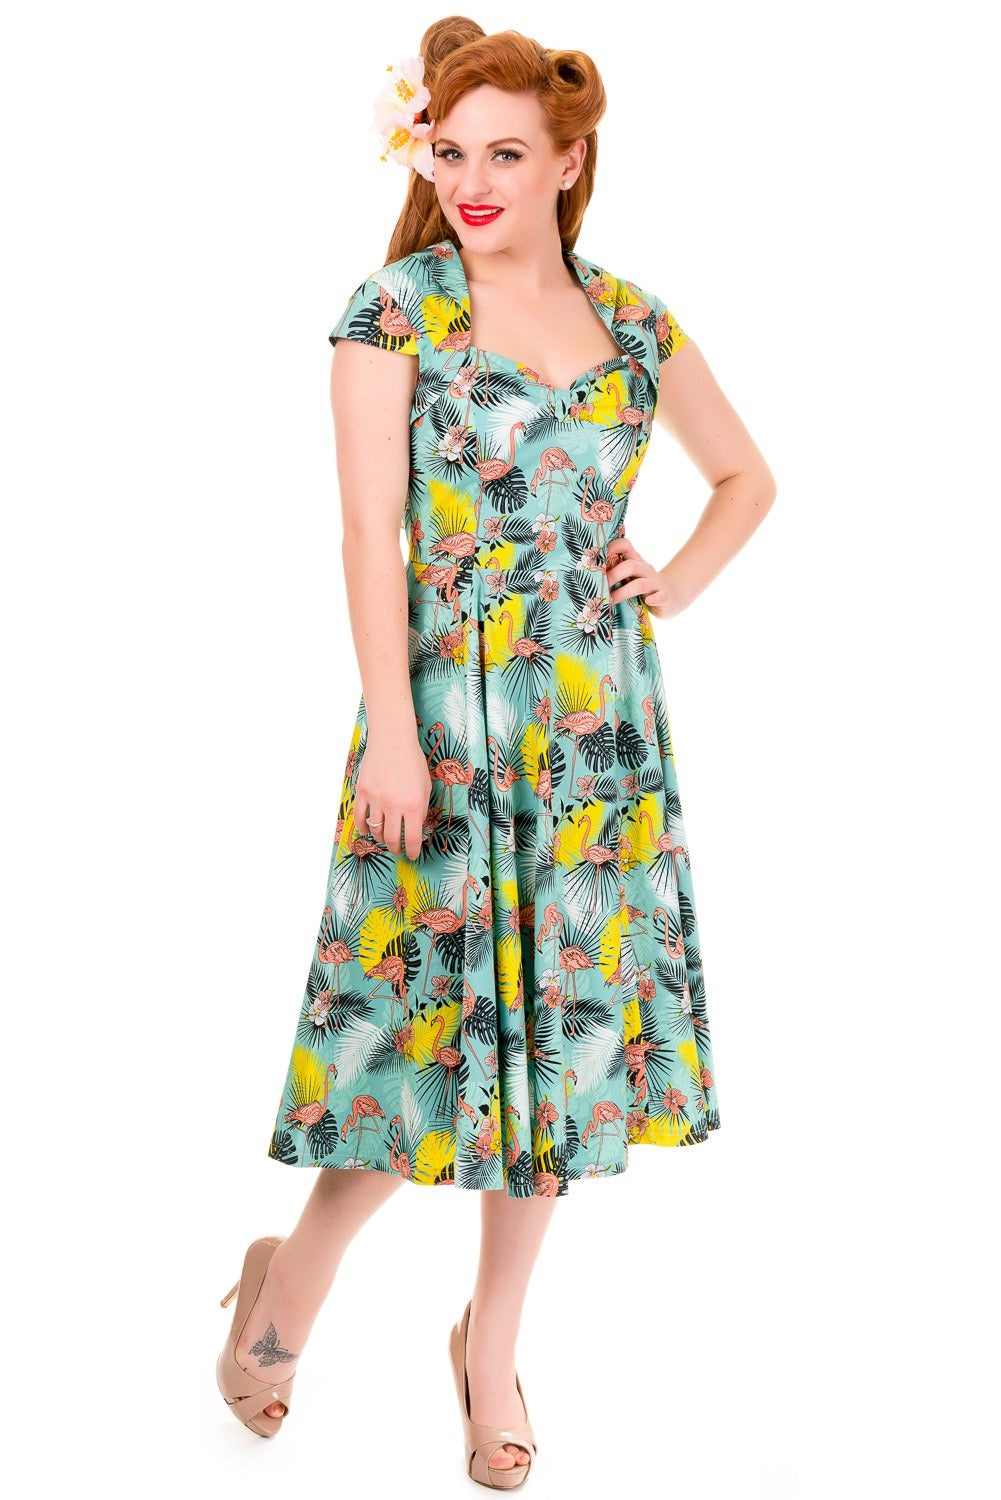 Wunderlust Flamingo Dress By  Banned